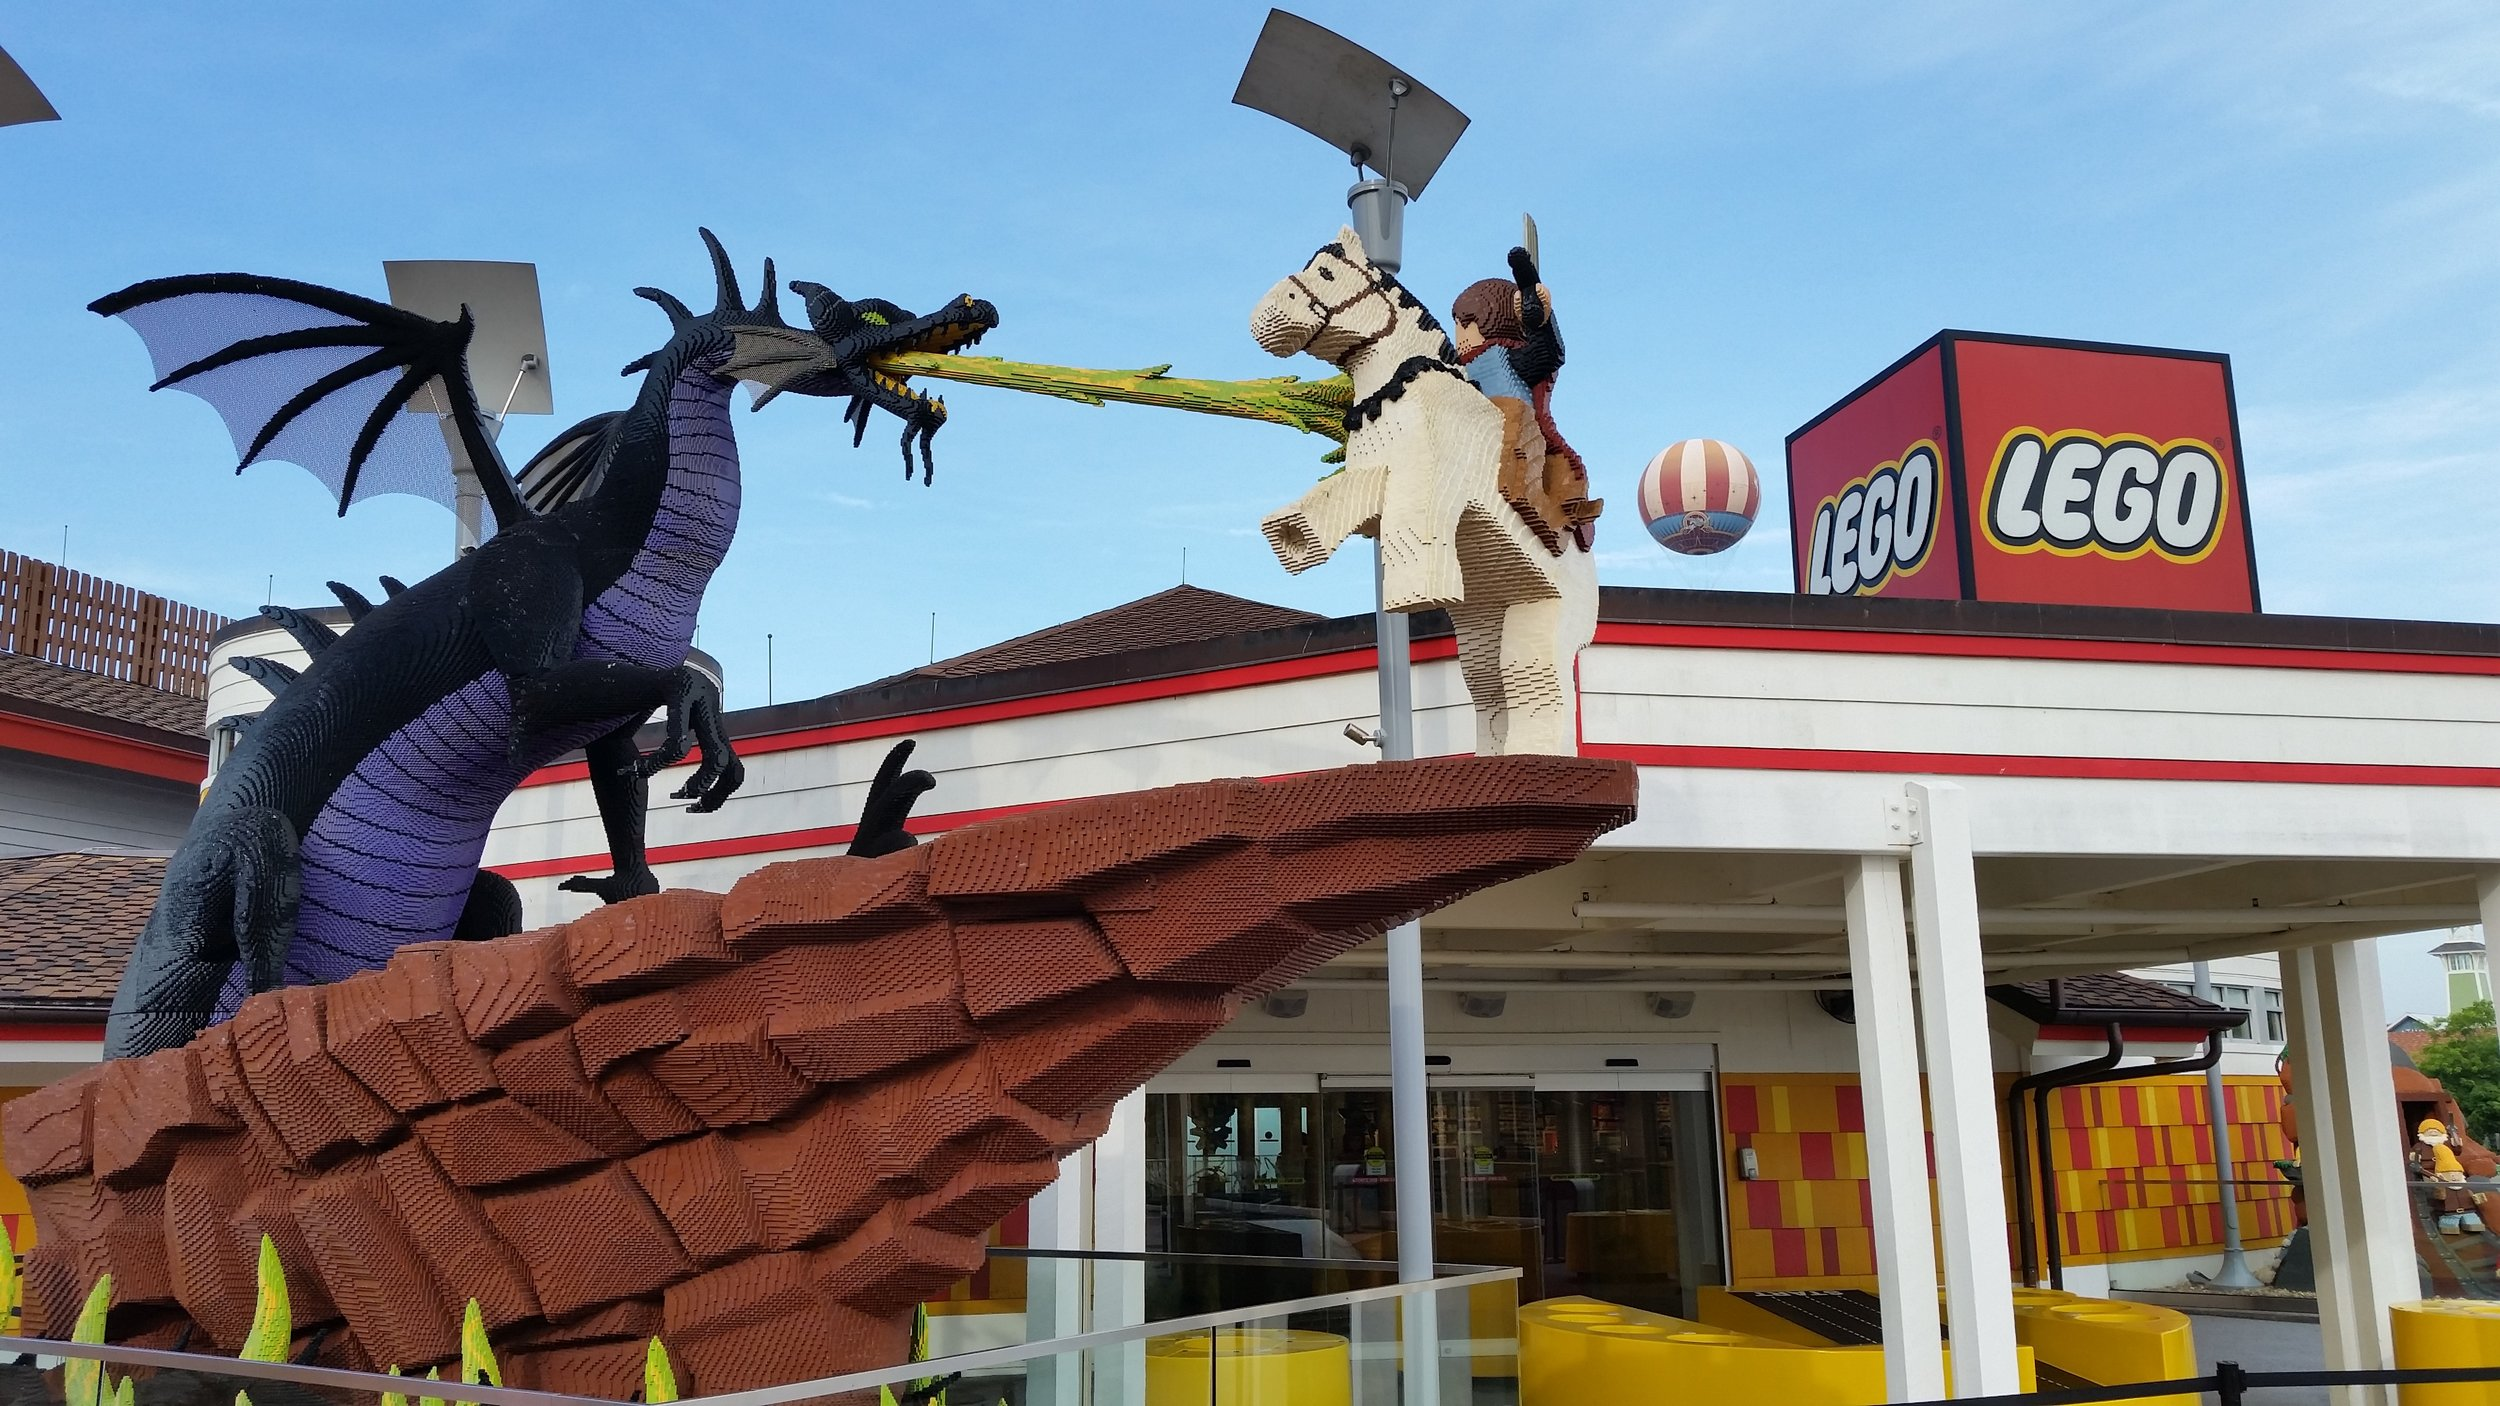 Lego Imagination Center, Marketplace, Disney Springs